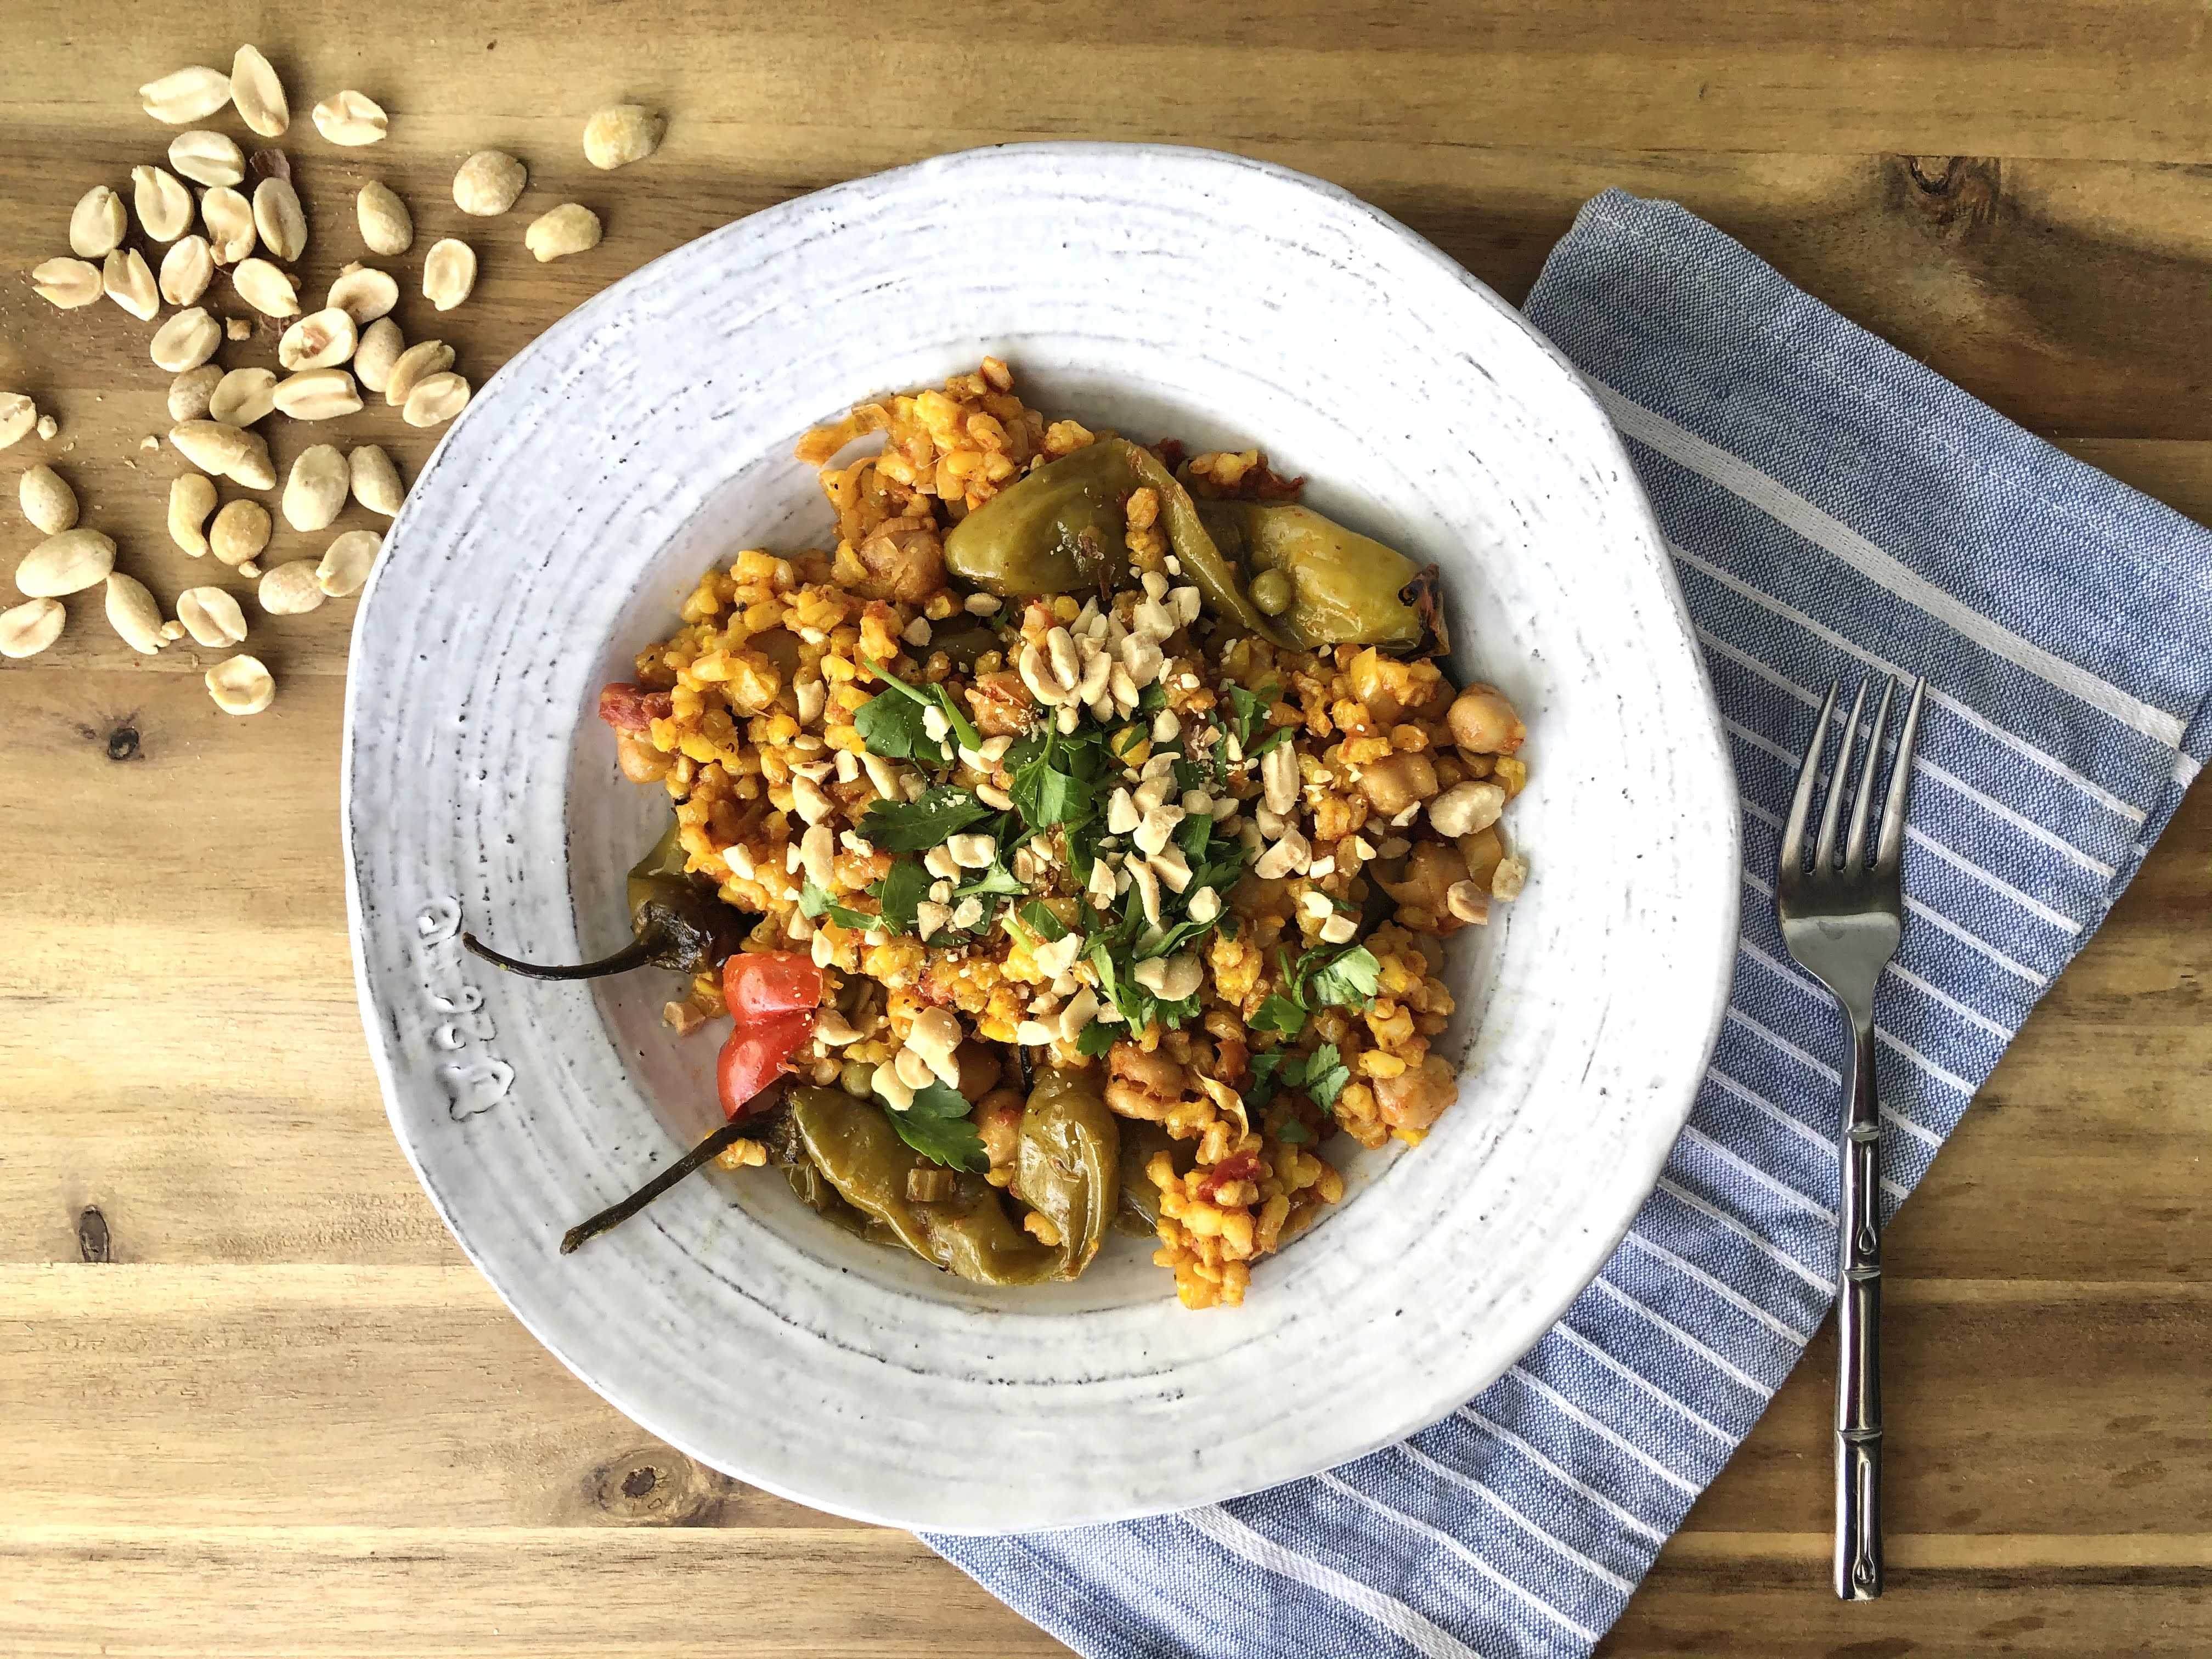 vegetable paella in a rustic white bowl atop a wooden surface with peanuts scattered in the background